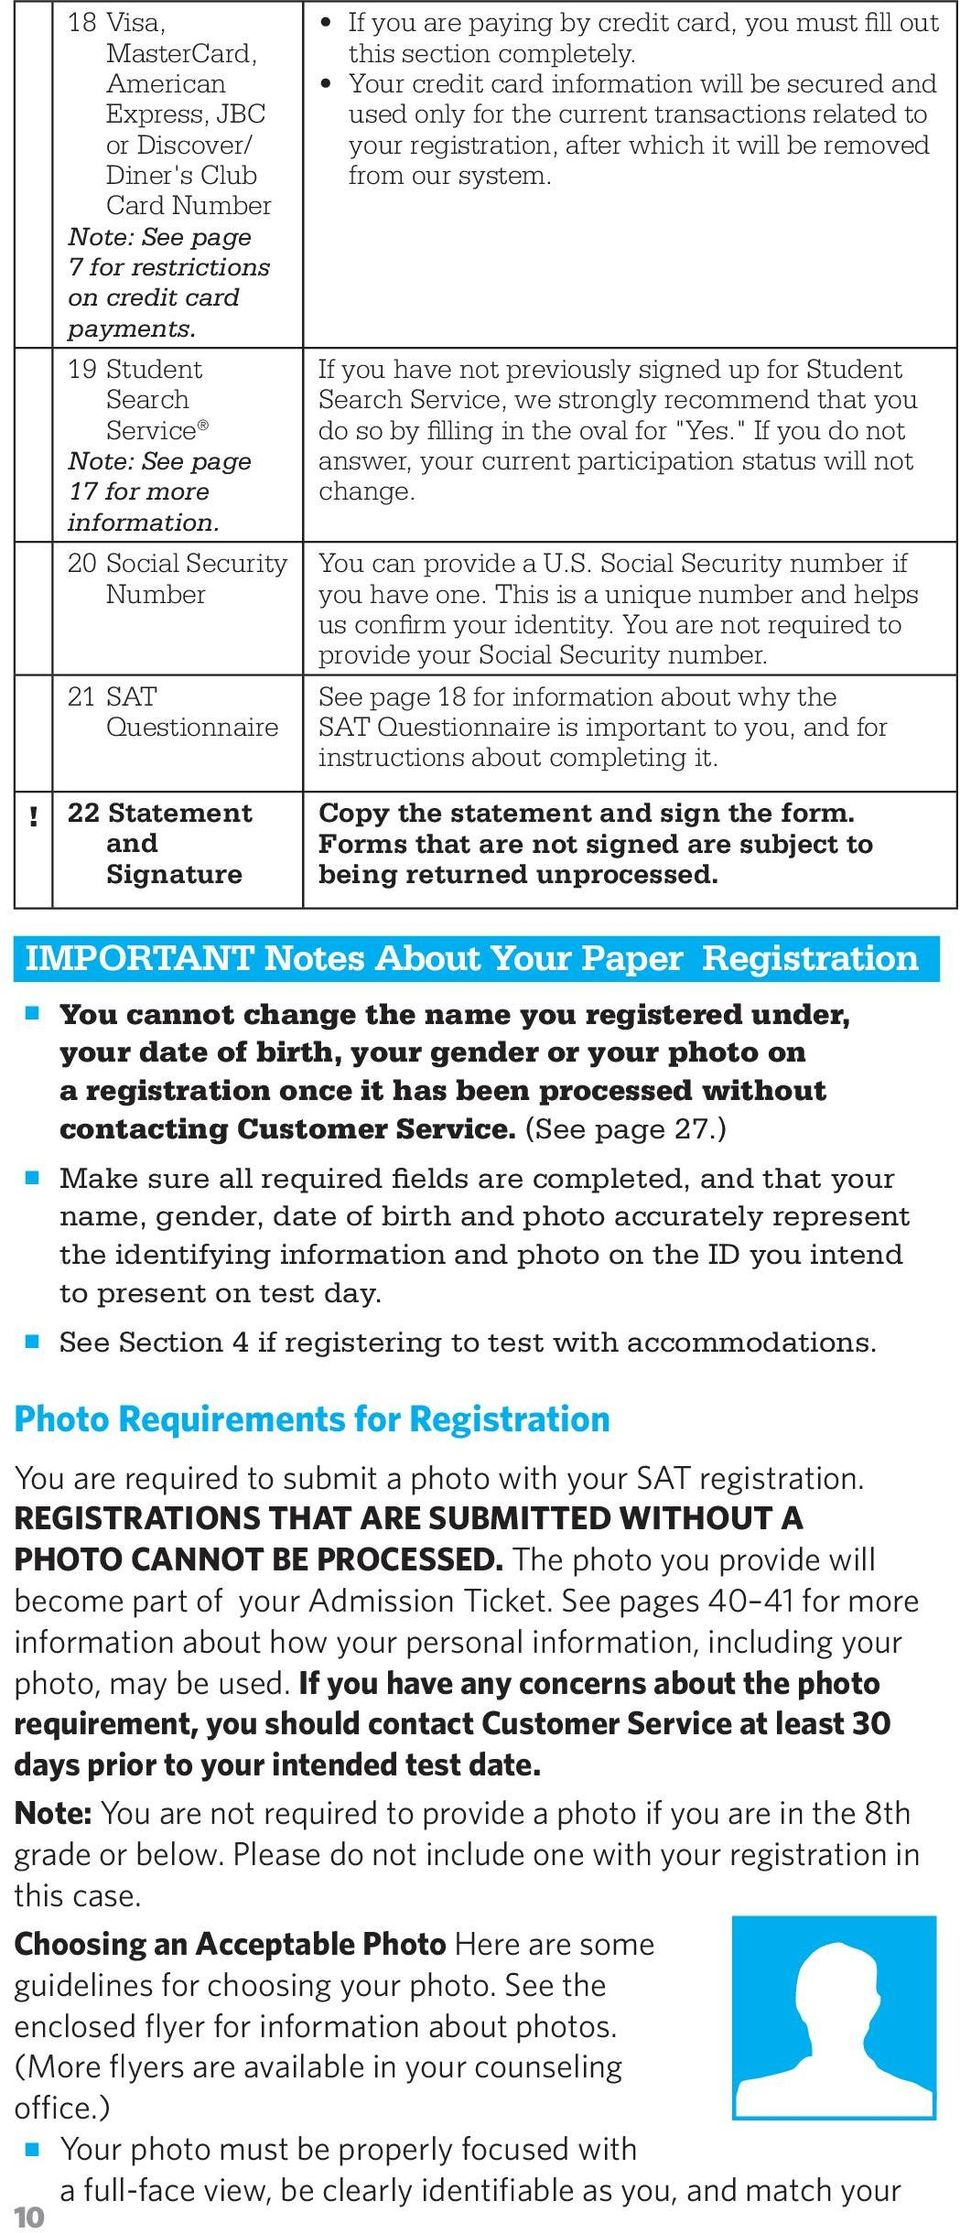 22 Statement and Signature If you are paying by credit card, you must fill out this section completely.